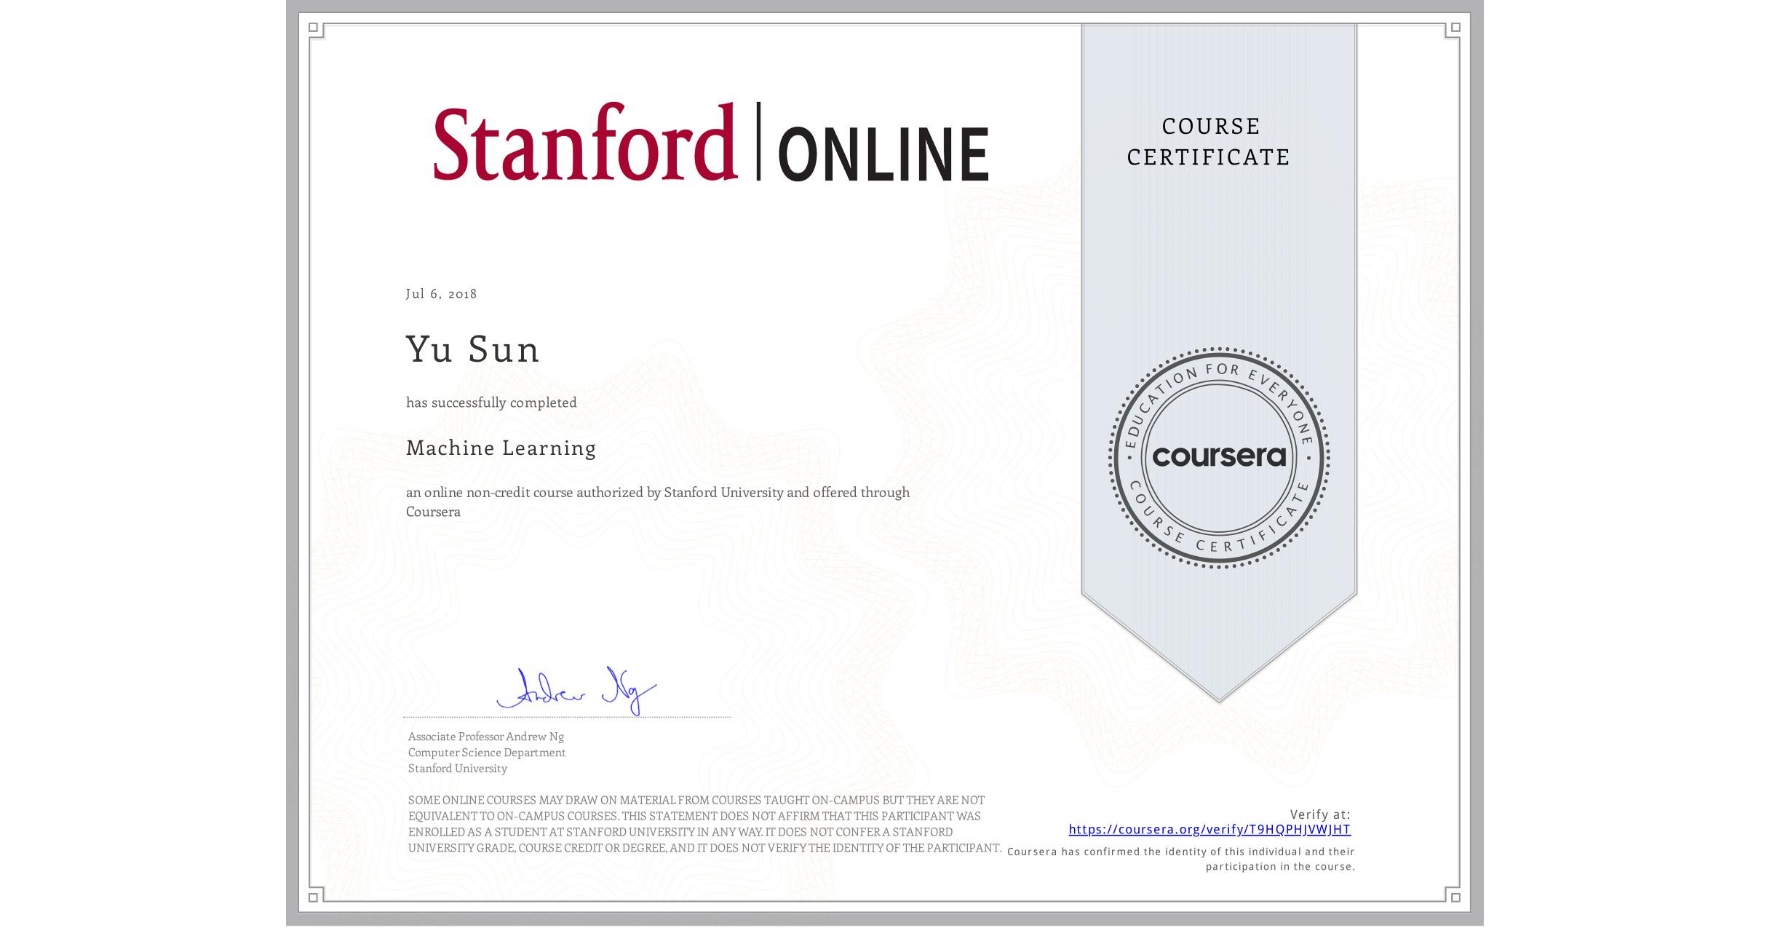 View certificate for Yu Sun, Machine Learning, an online non-credit course authorized by Stanford University and offered through Coursera